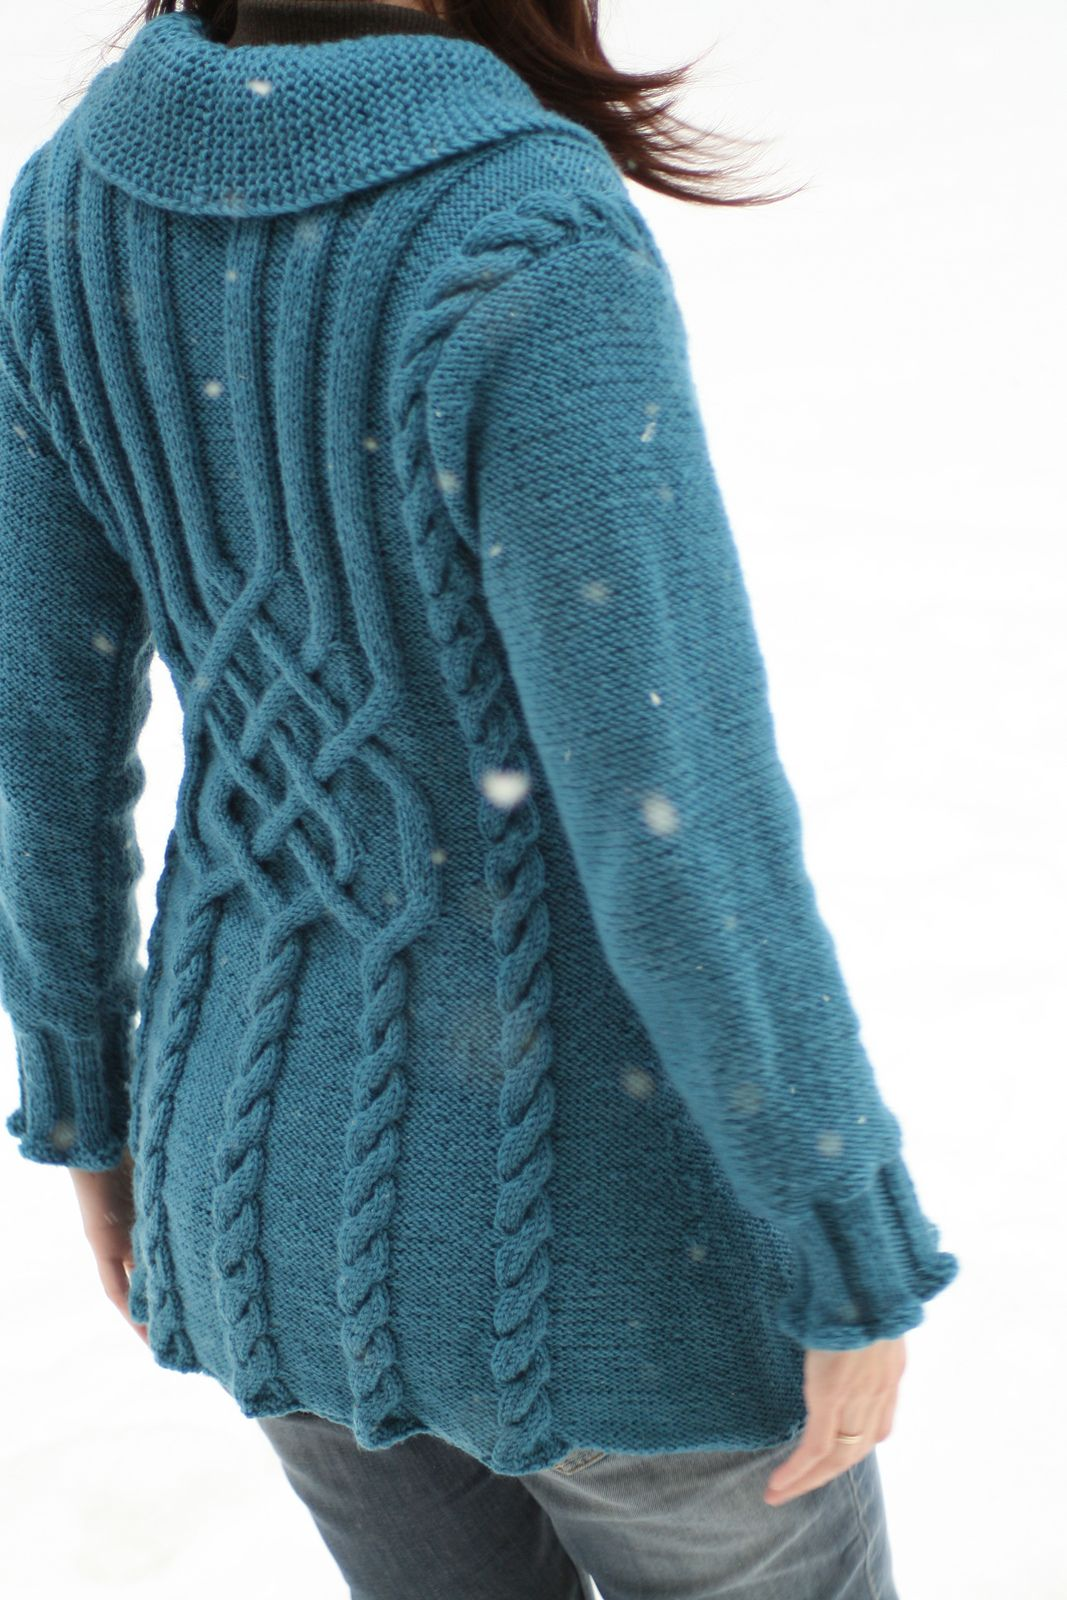 Knitting Pattern Design : Norwegian Knitting on Pinterest Fair Isle Chart ...